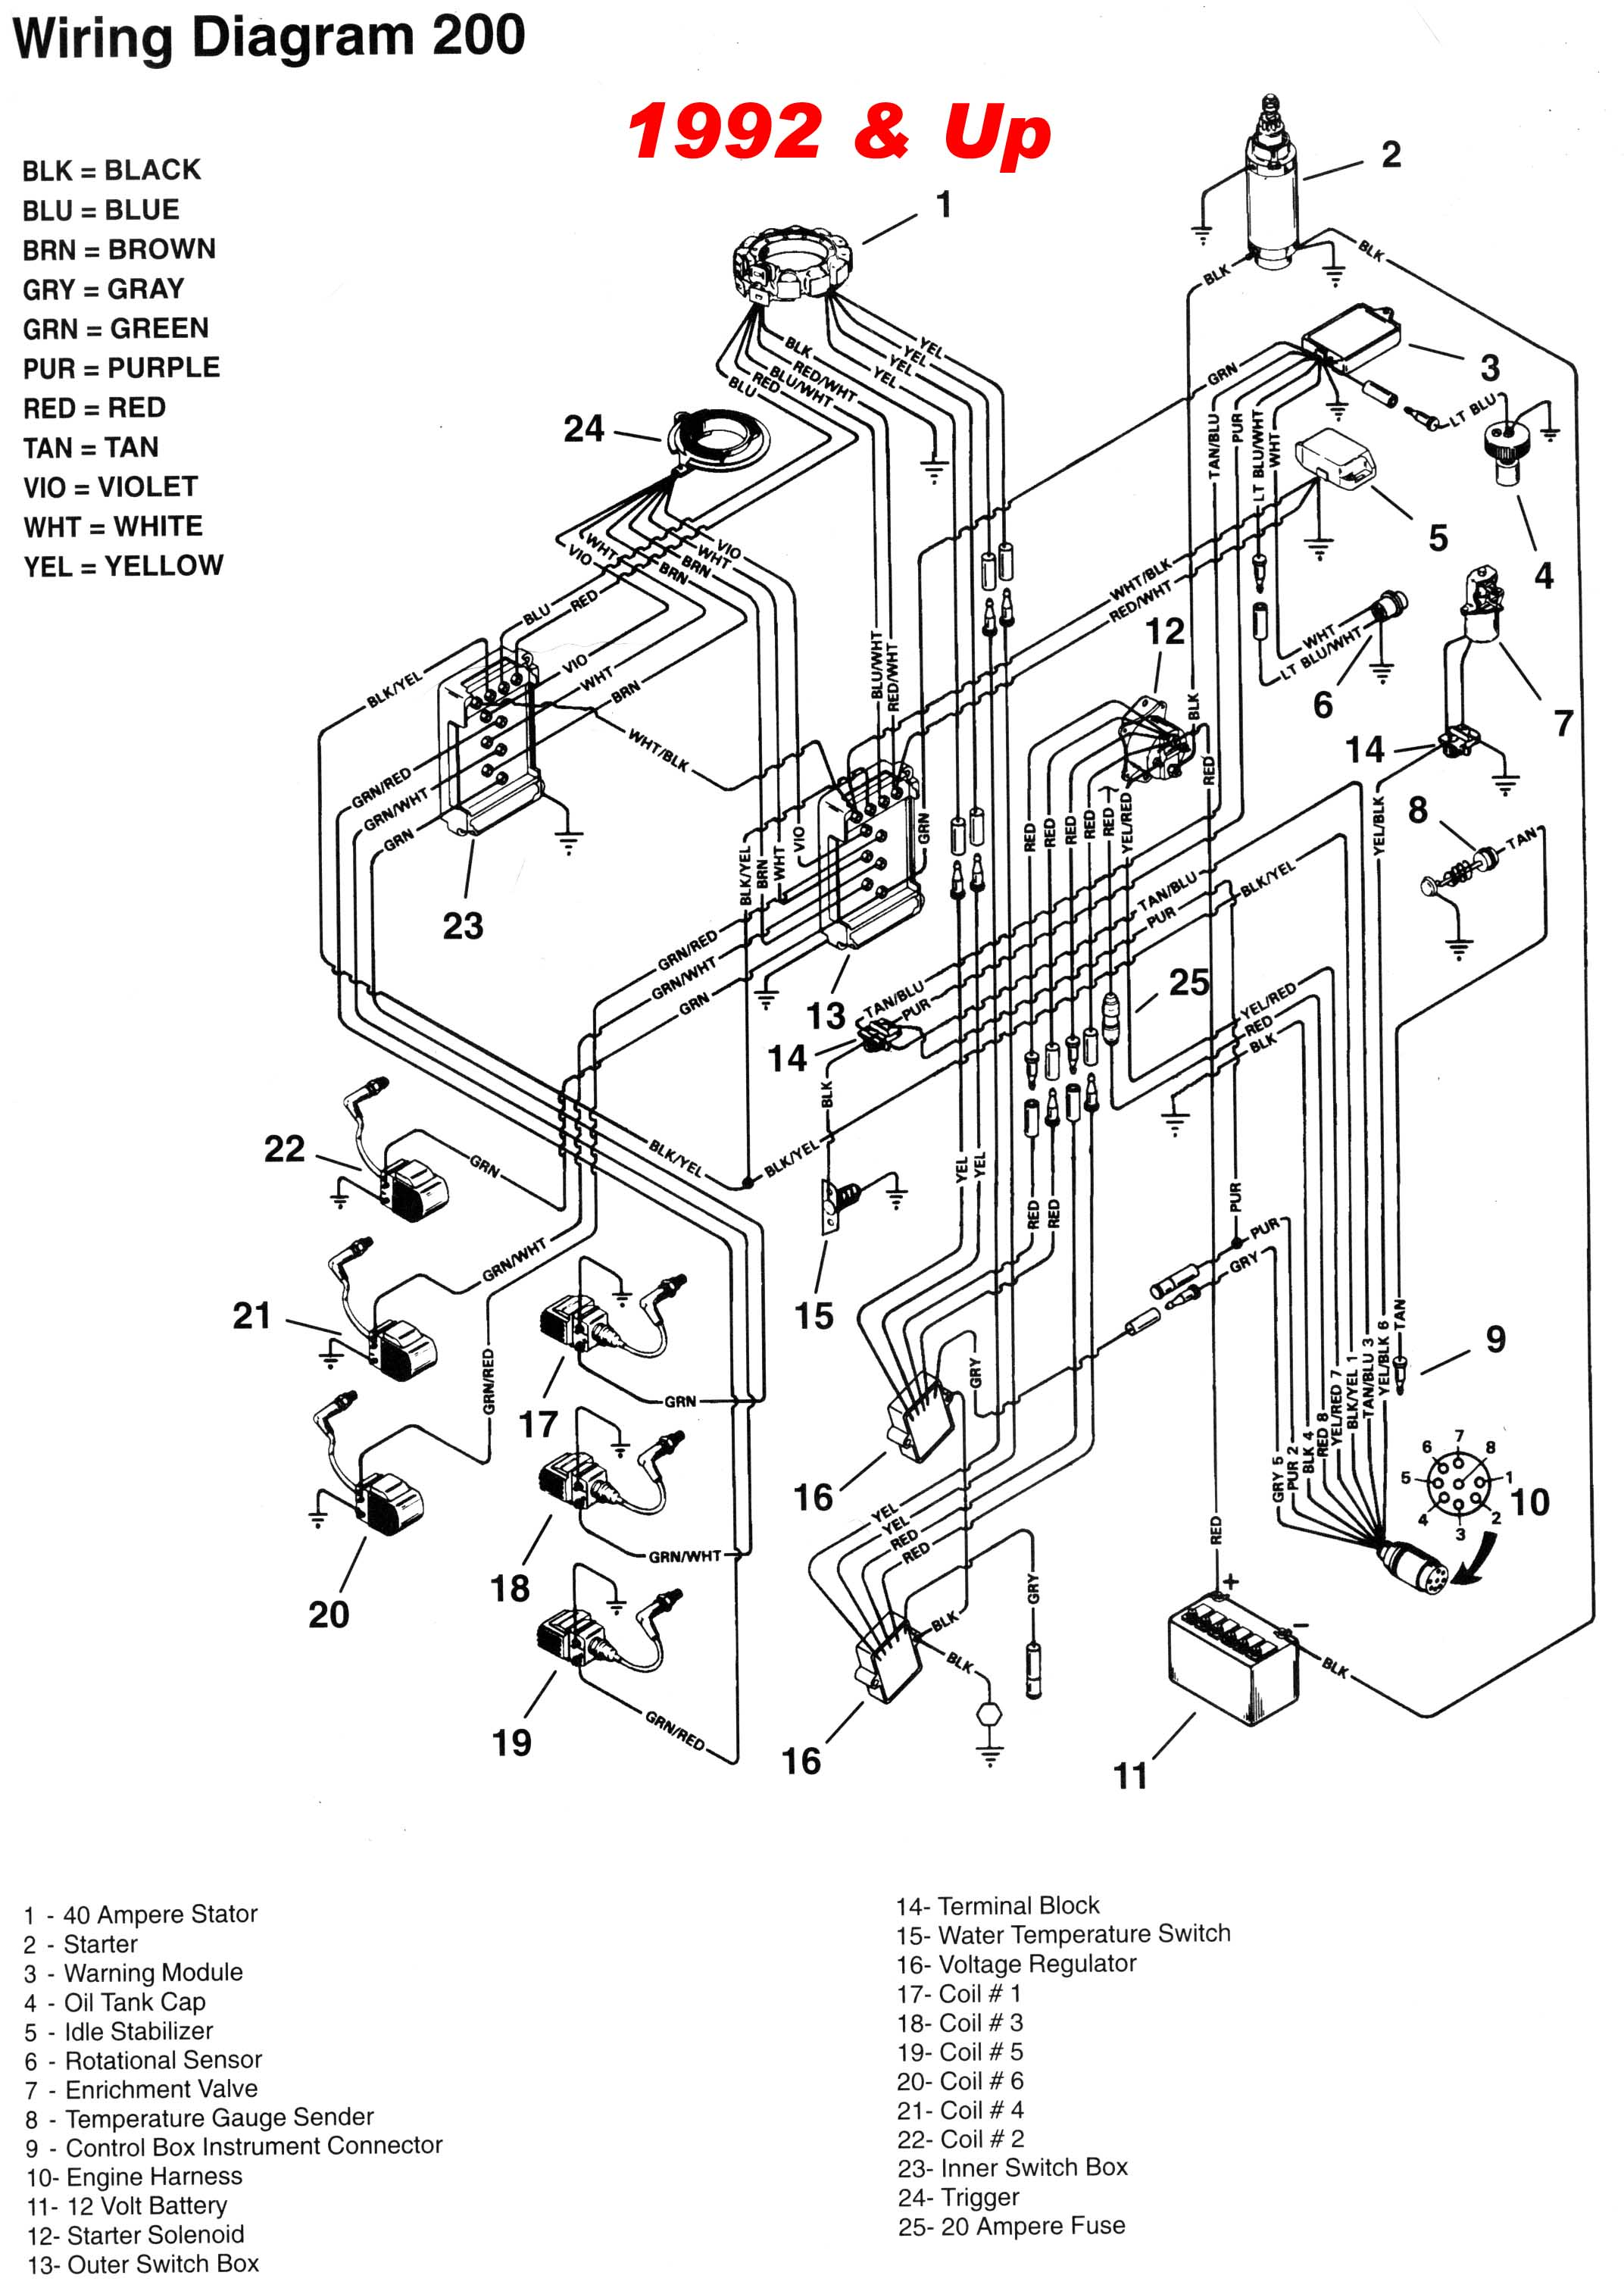 mercury_92up_200_wiring mercury outboard 2 5 and 3 0l v6 and gearcase faq mercury 14 pin wiring harness diagram at crackthecode.co